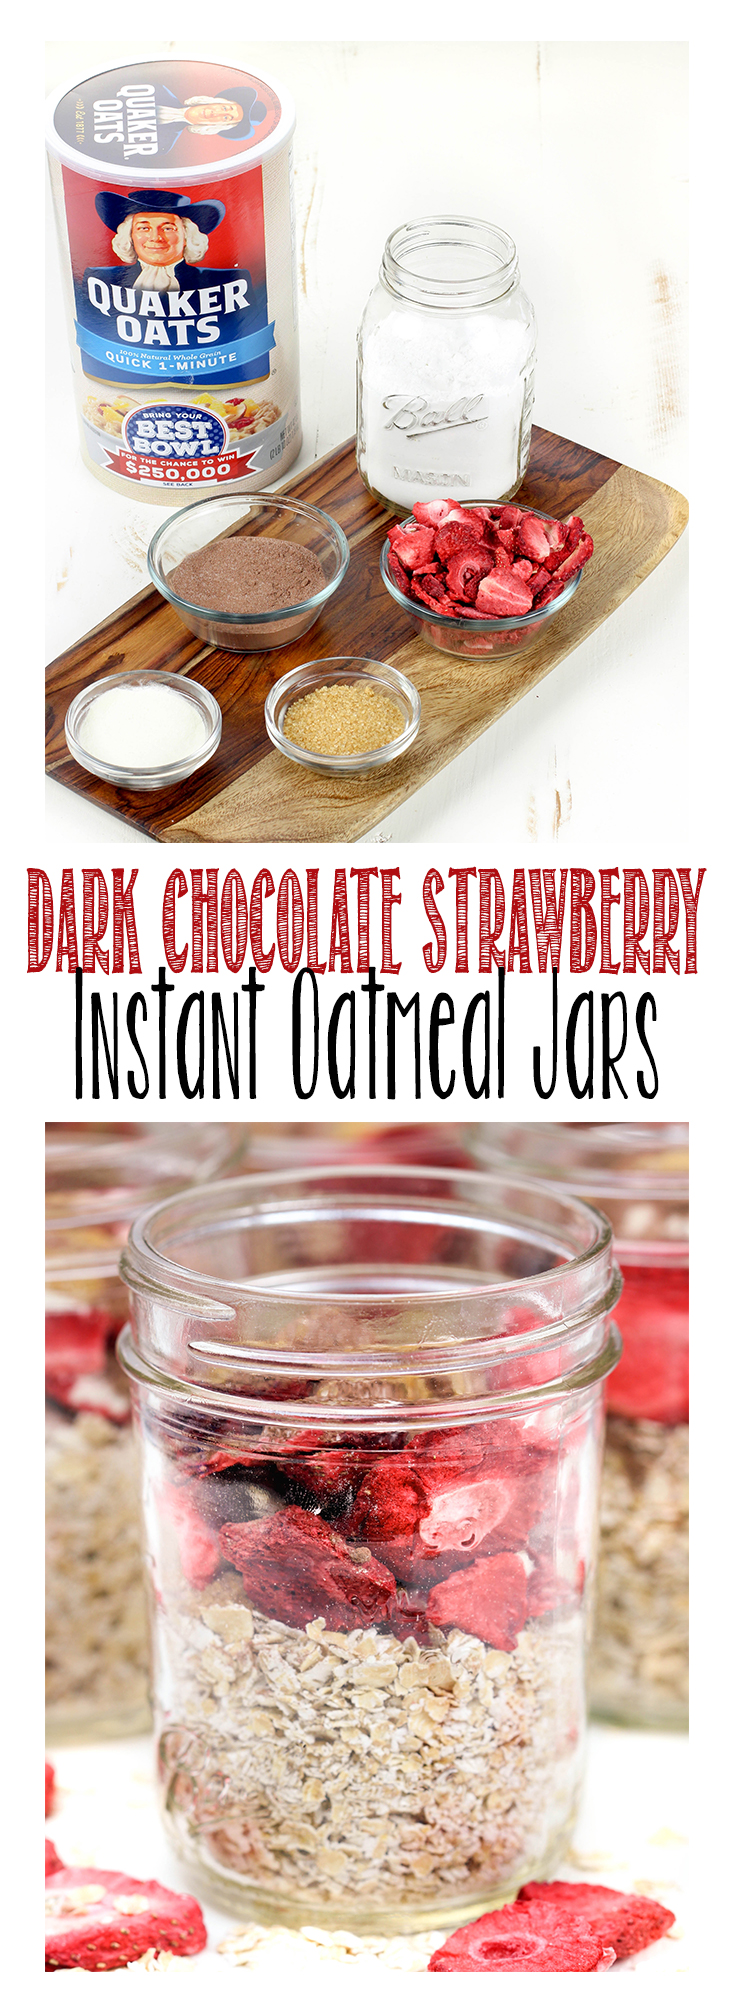 Store bought oatmeal packets are full of sugar and additive. Make these Dark Chocolate Strawberry Instant Oatmeal Jars instead!